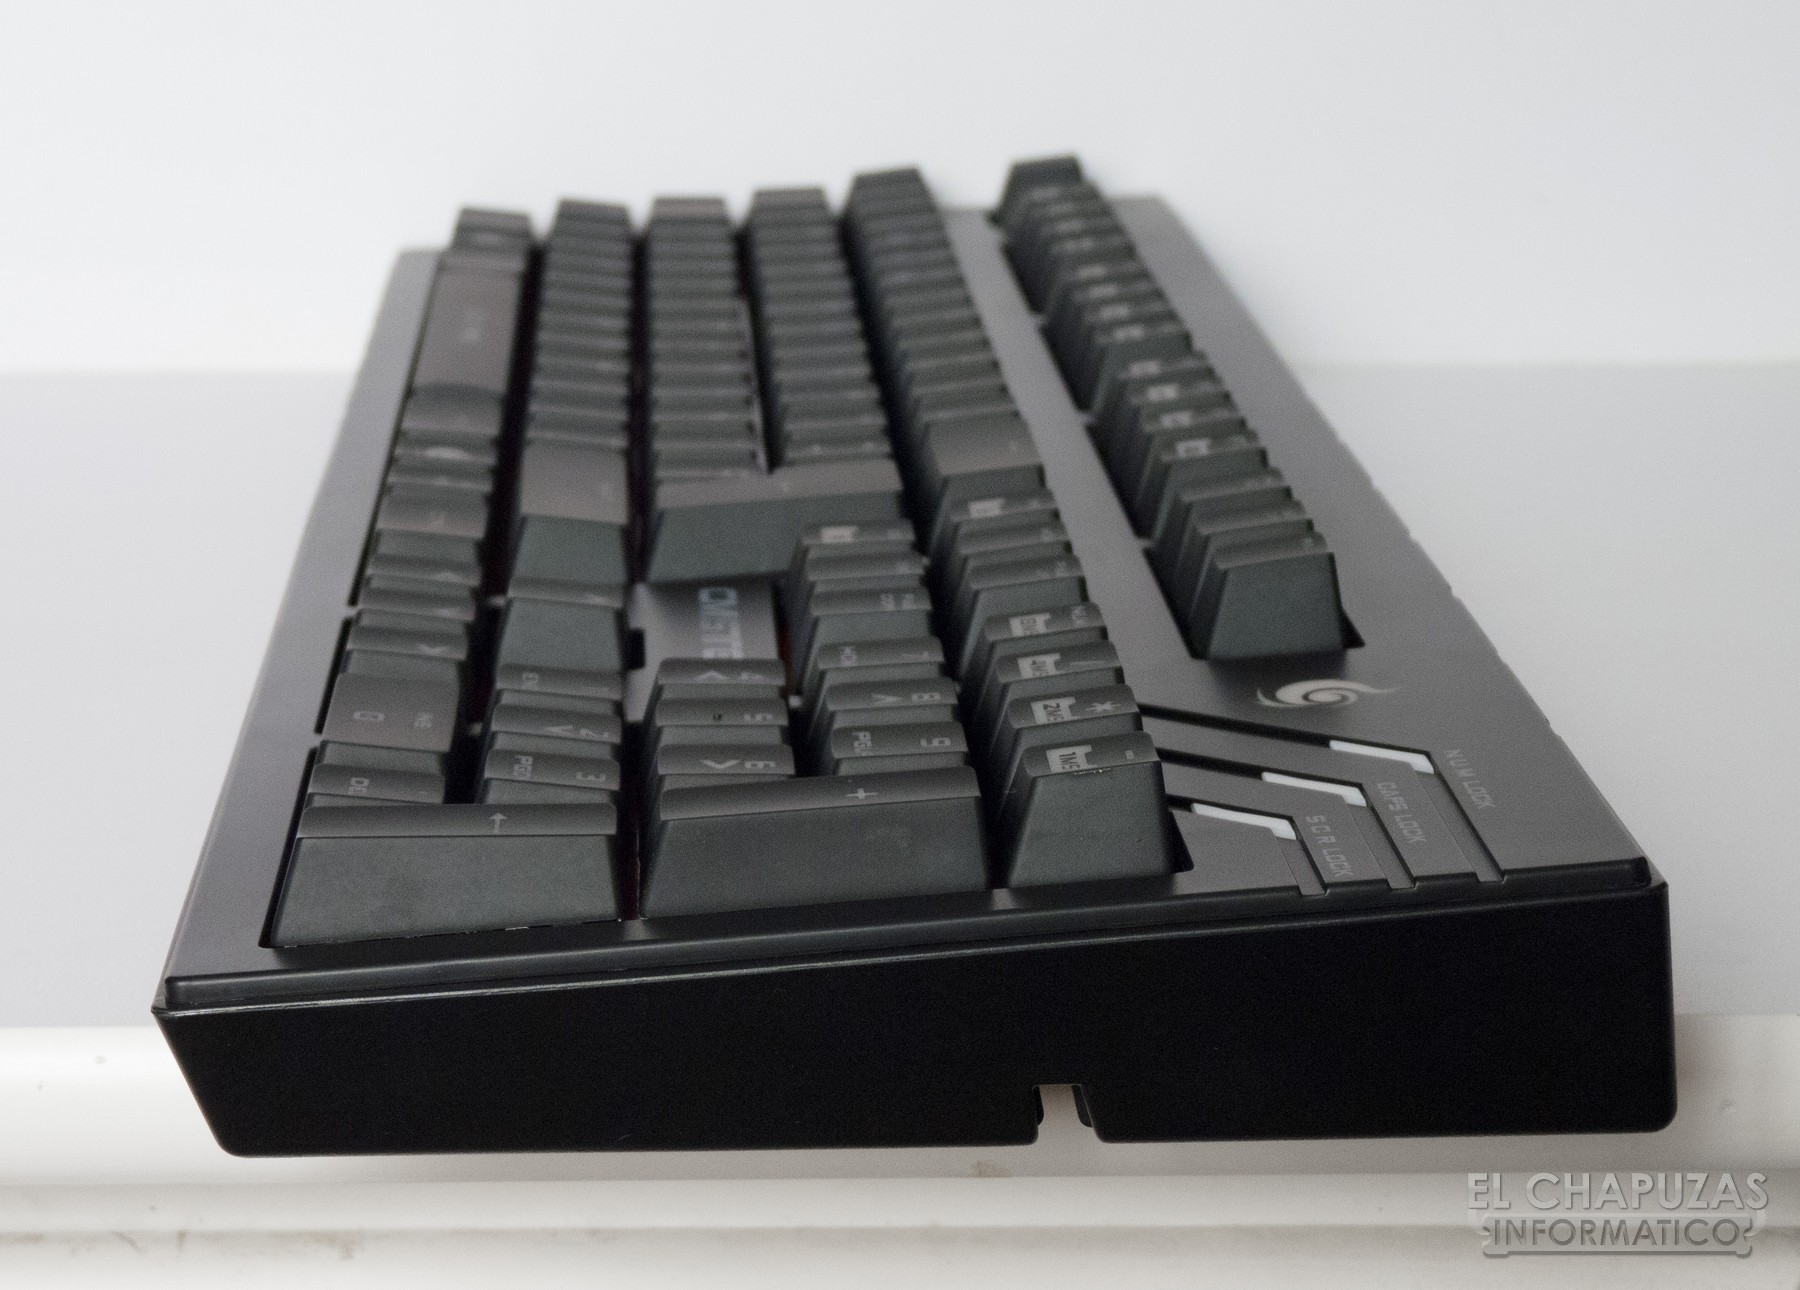 Review: Cooler Master CM Storm Quick Fire Pro